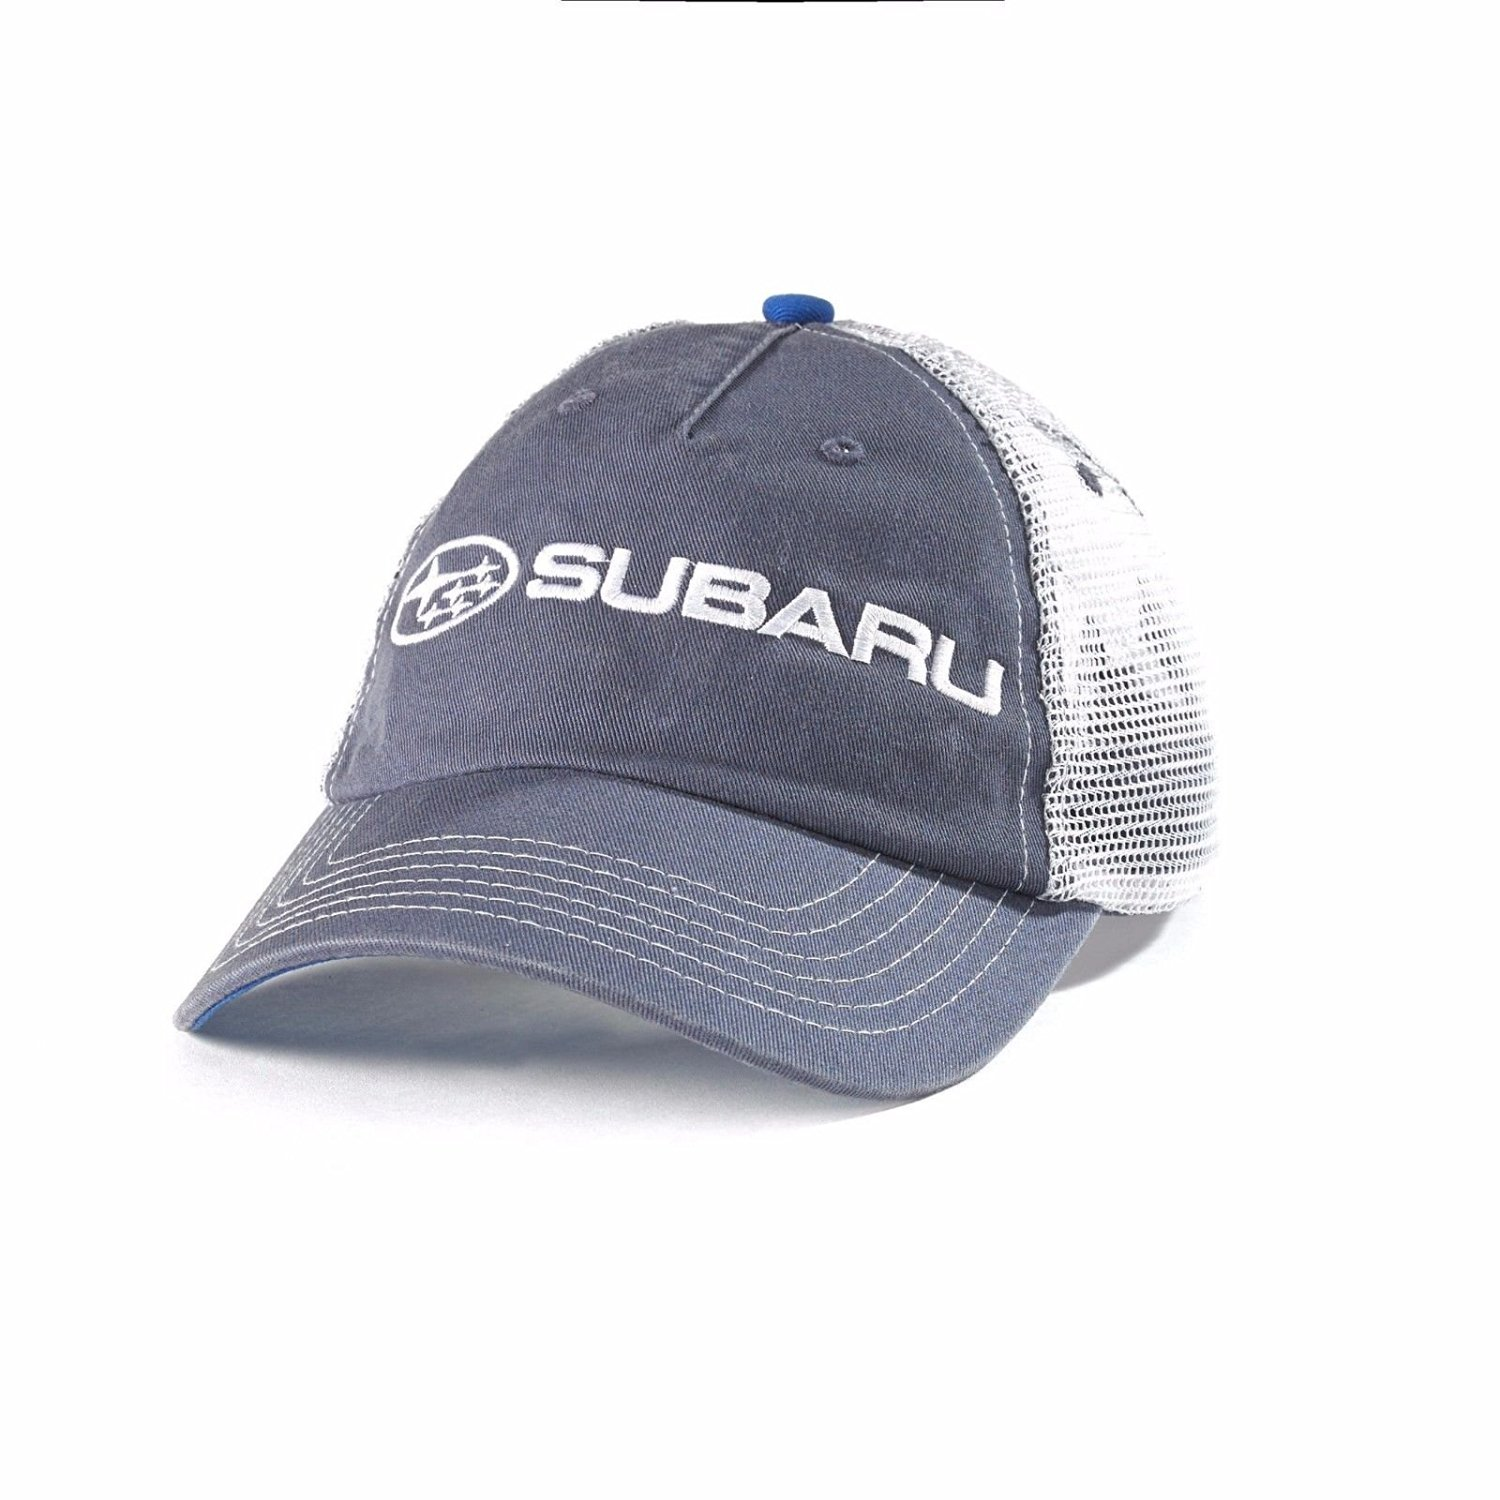 b954f18a55bc1 Get Quotations · SUBARU Mesh back Cap Hat Genuine Legacy Forester Impreza  Outback Sti Wrx New